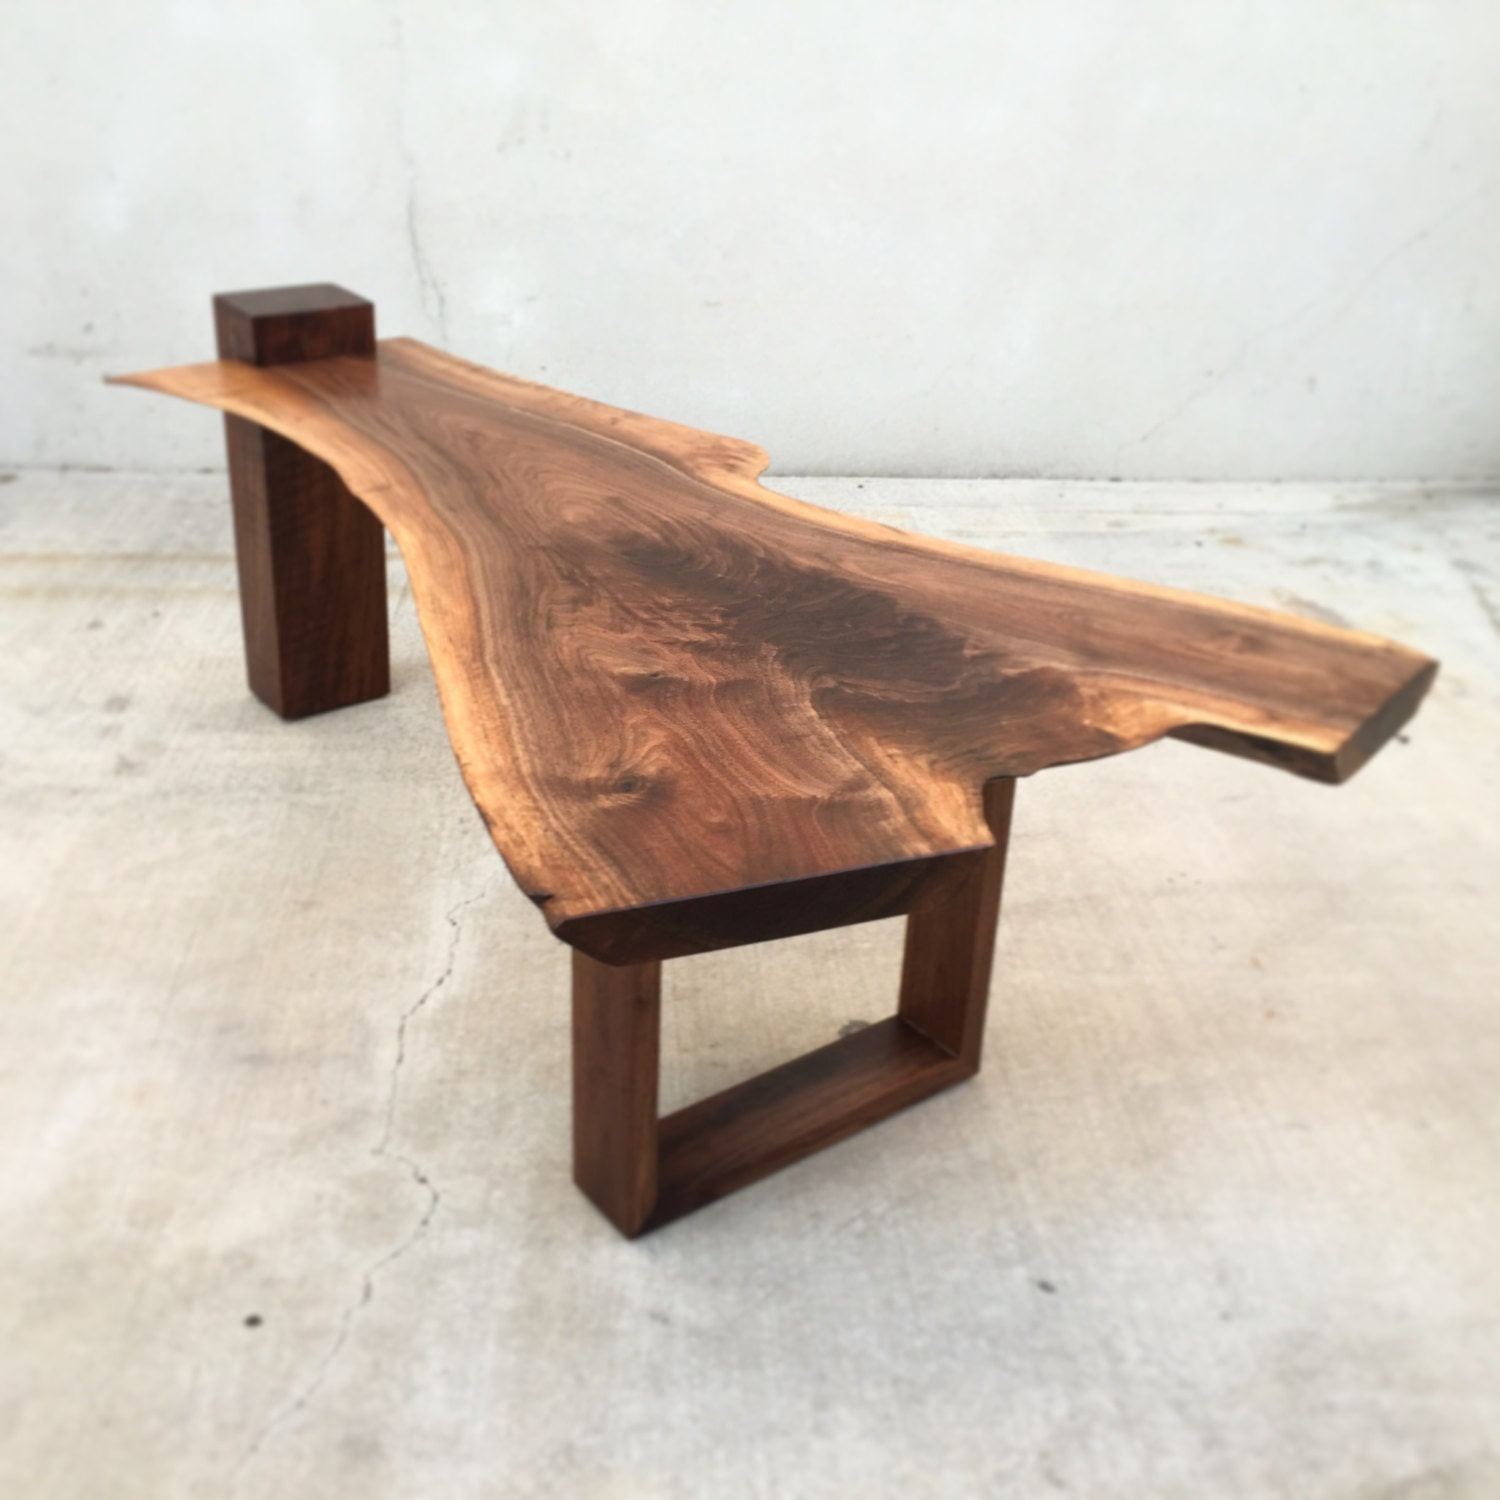 Sold One Of A Kind Live Edge Black Walnut Coffee Table With